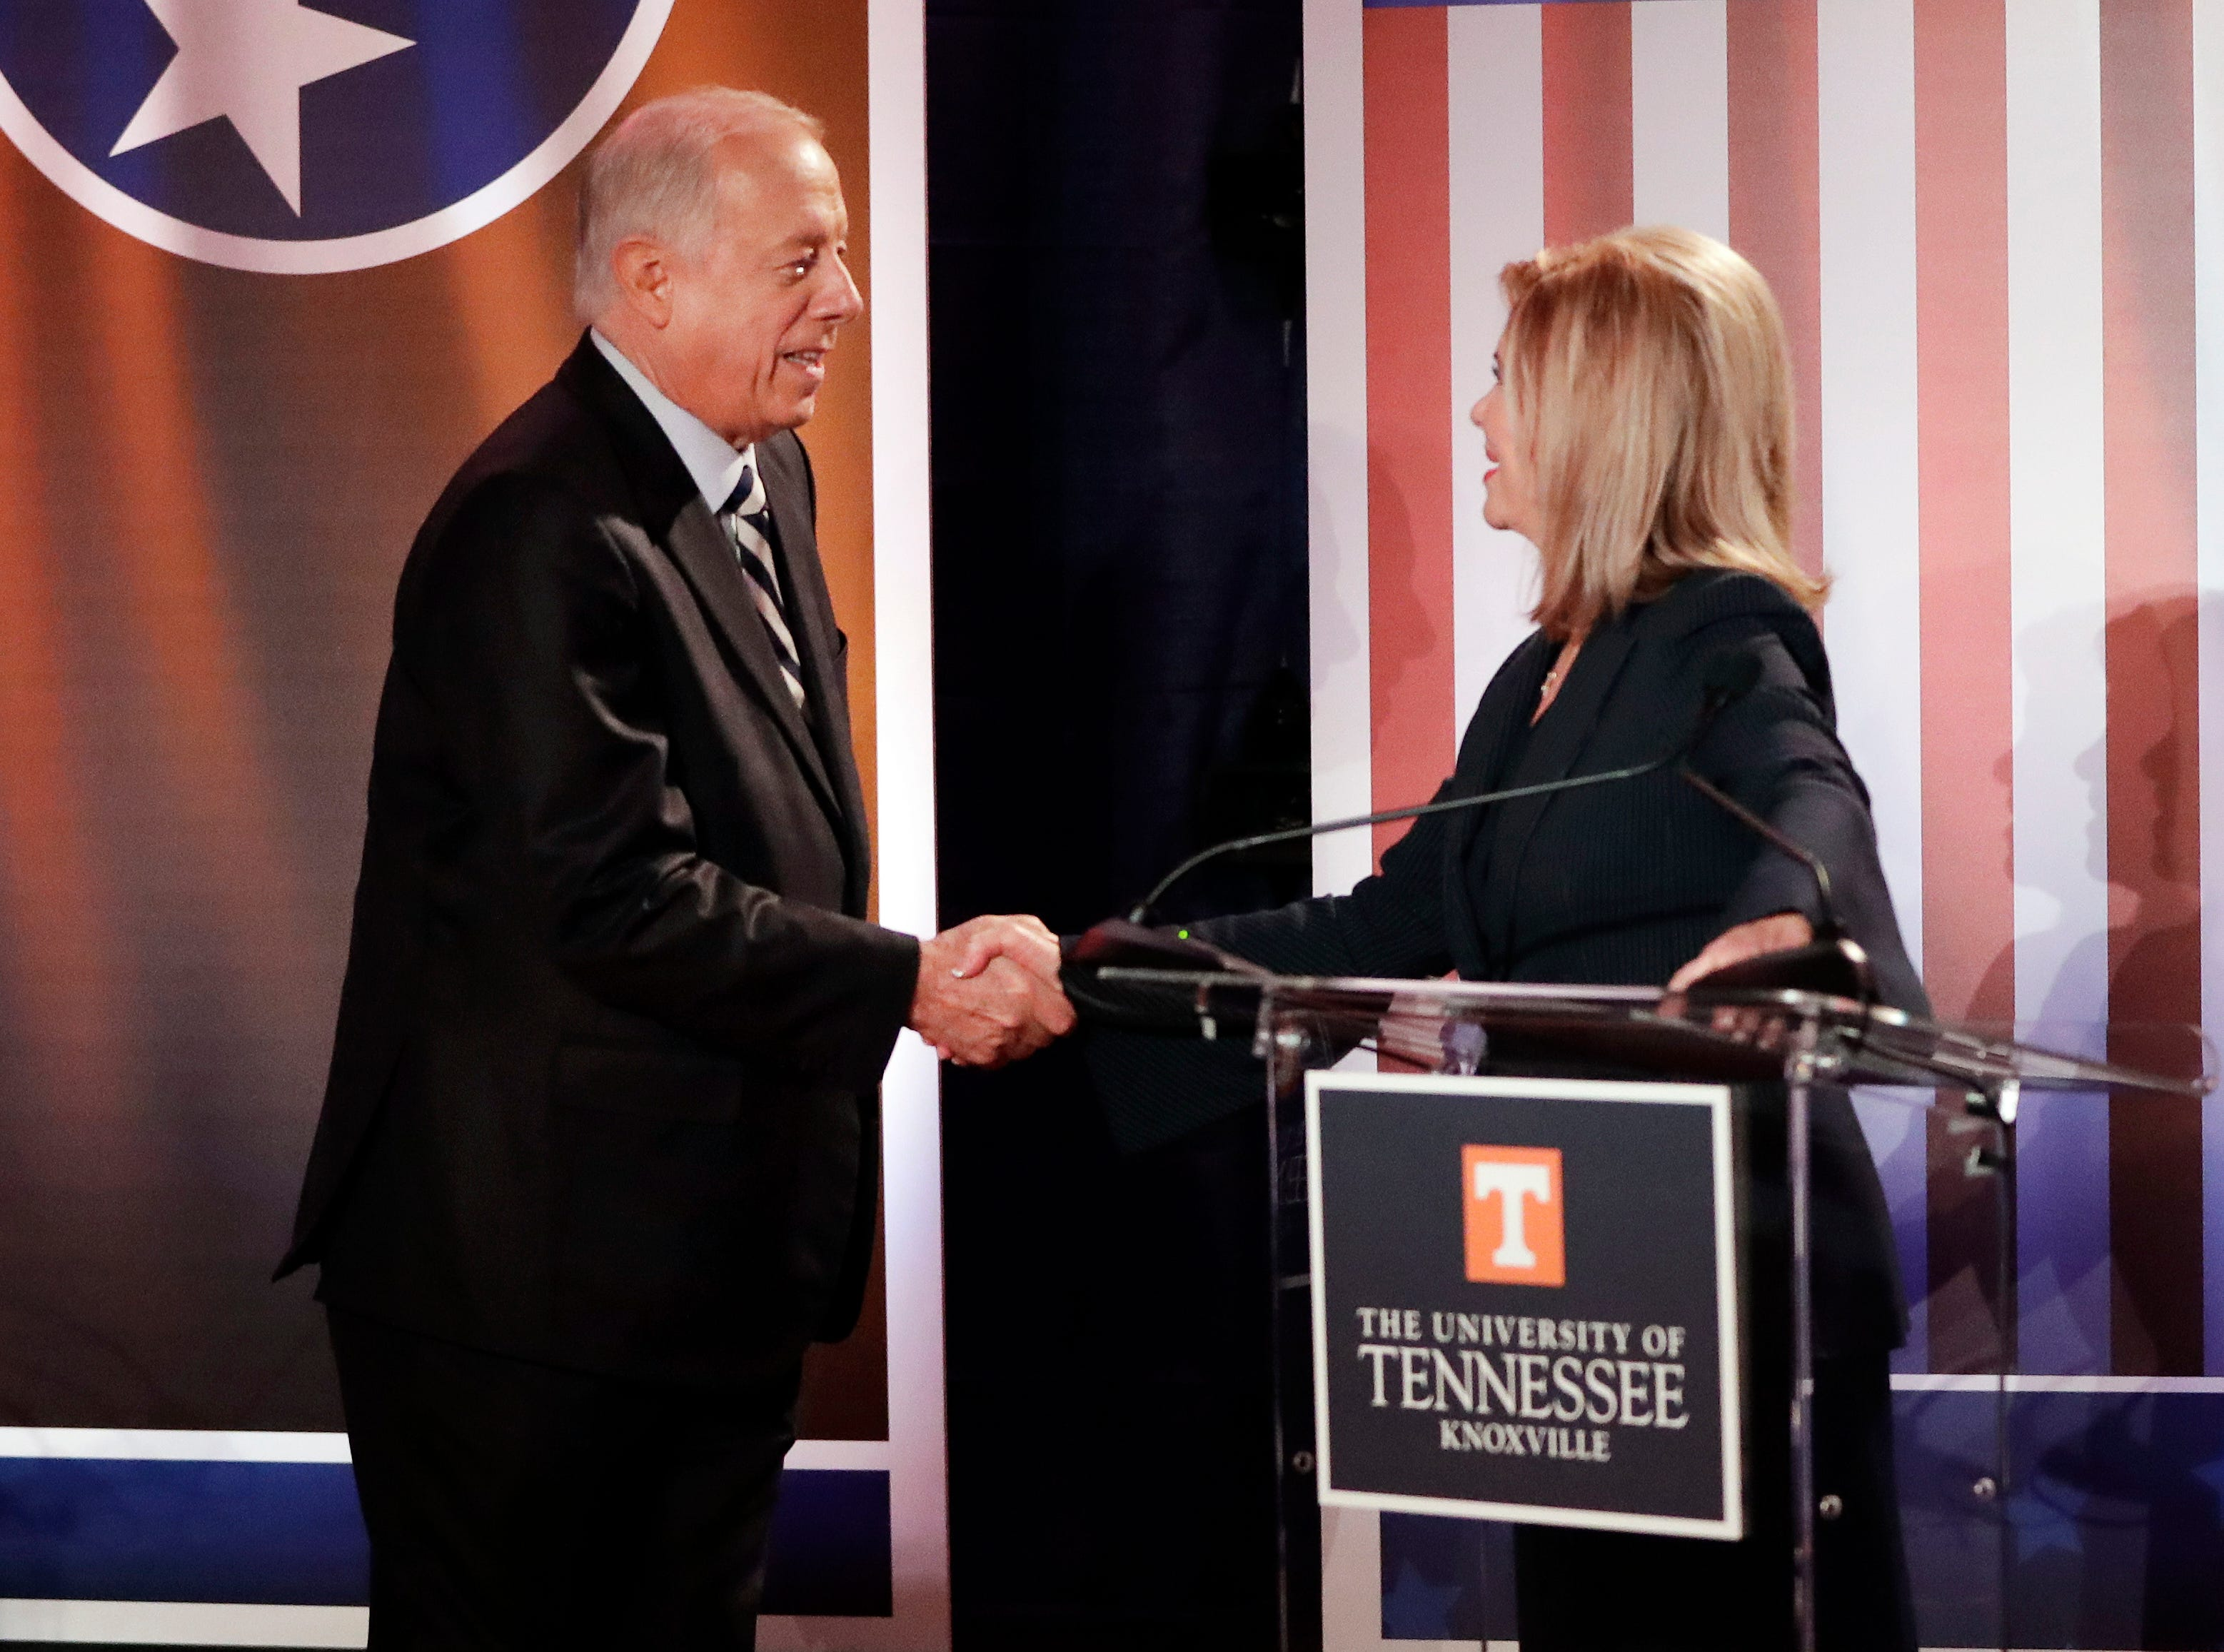 Democratic candidate and former Gov. Phil Bredesen and Republican U.S. Rep. Marsha Blackburn shake hands after the 2018 Tennessee U.S. Senate Debate at The University of Tennessee Wednesday, Oct. 10, 2018, in in Knoxville, Tenn.